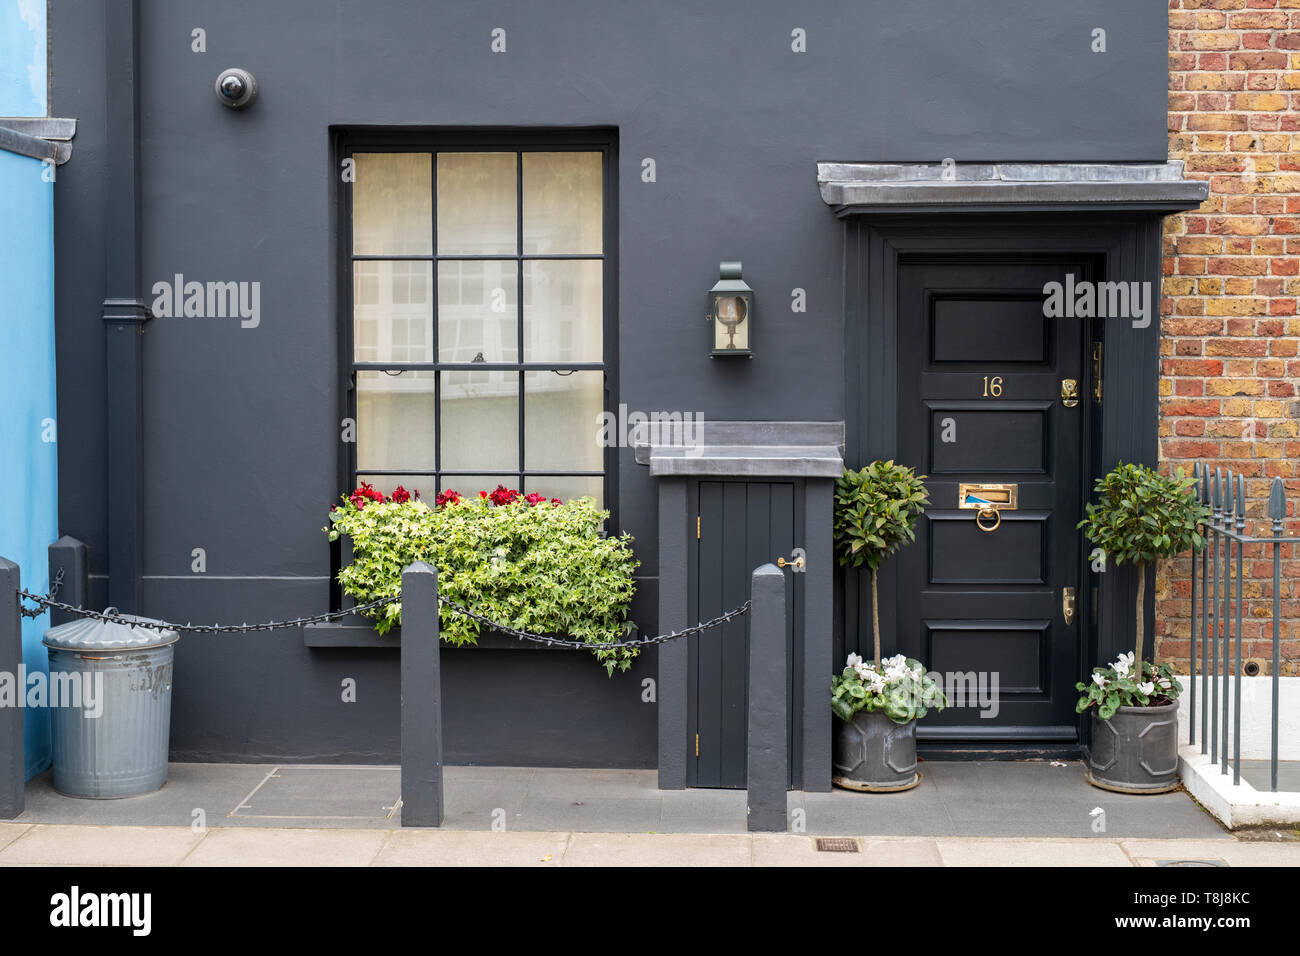 Grey painted house in godfrey street chelsea london england stock image